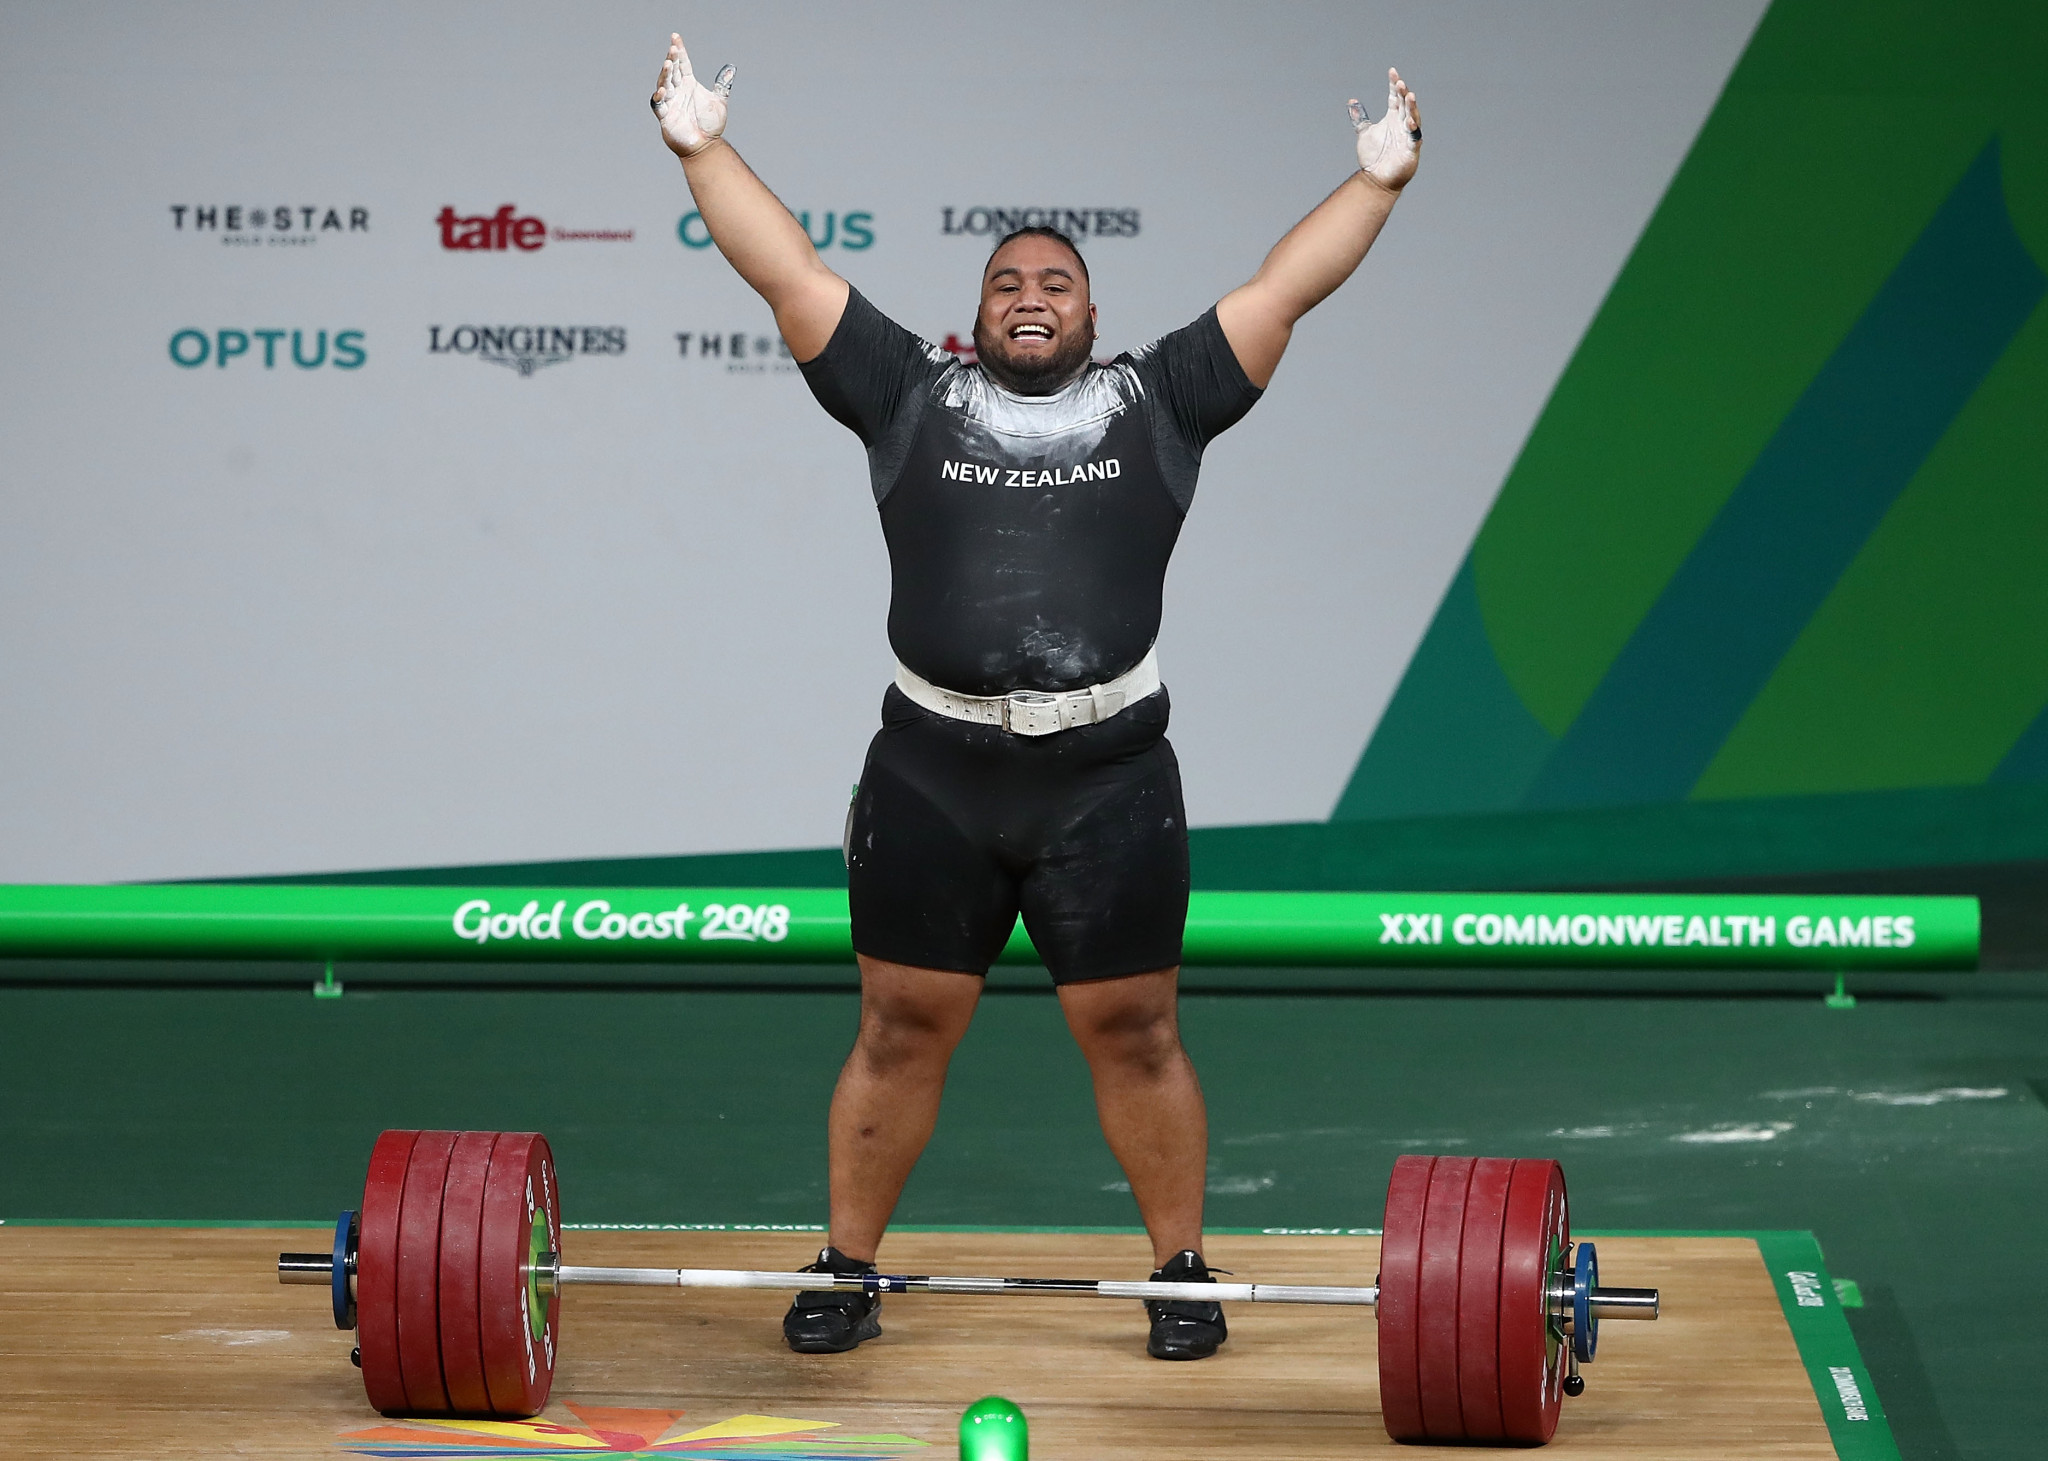 New Zealand's David Liti won the men's over 105kg event with a Commonwealth Games record total ©Getty Images